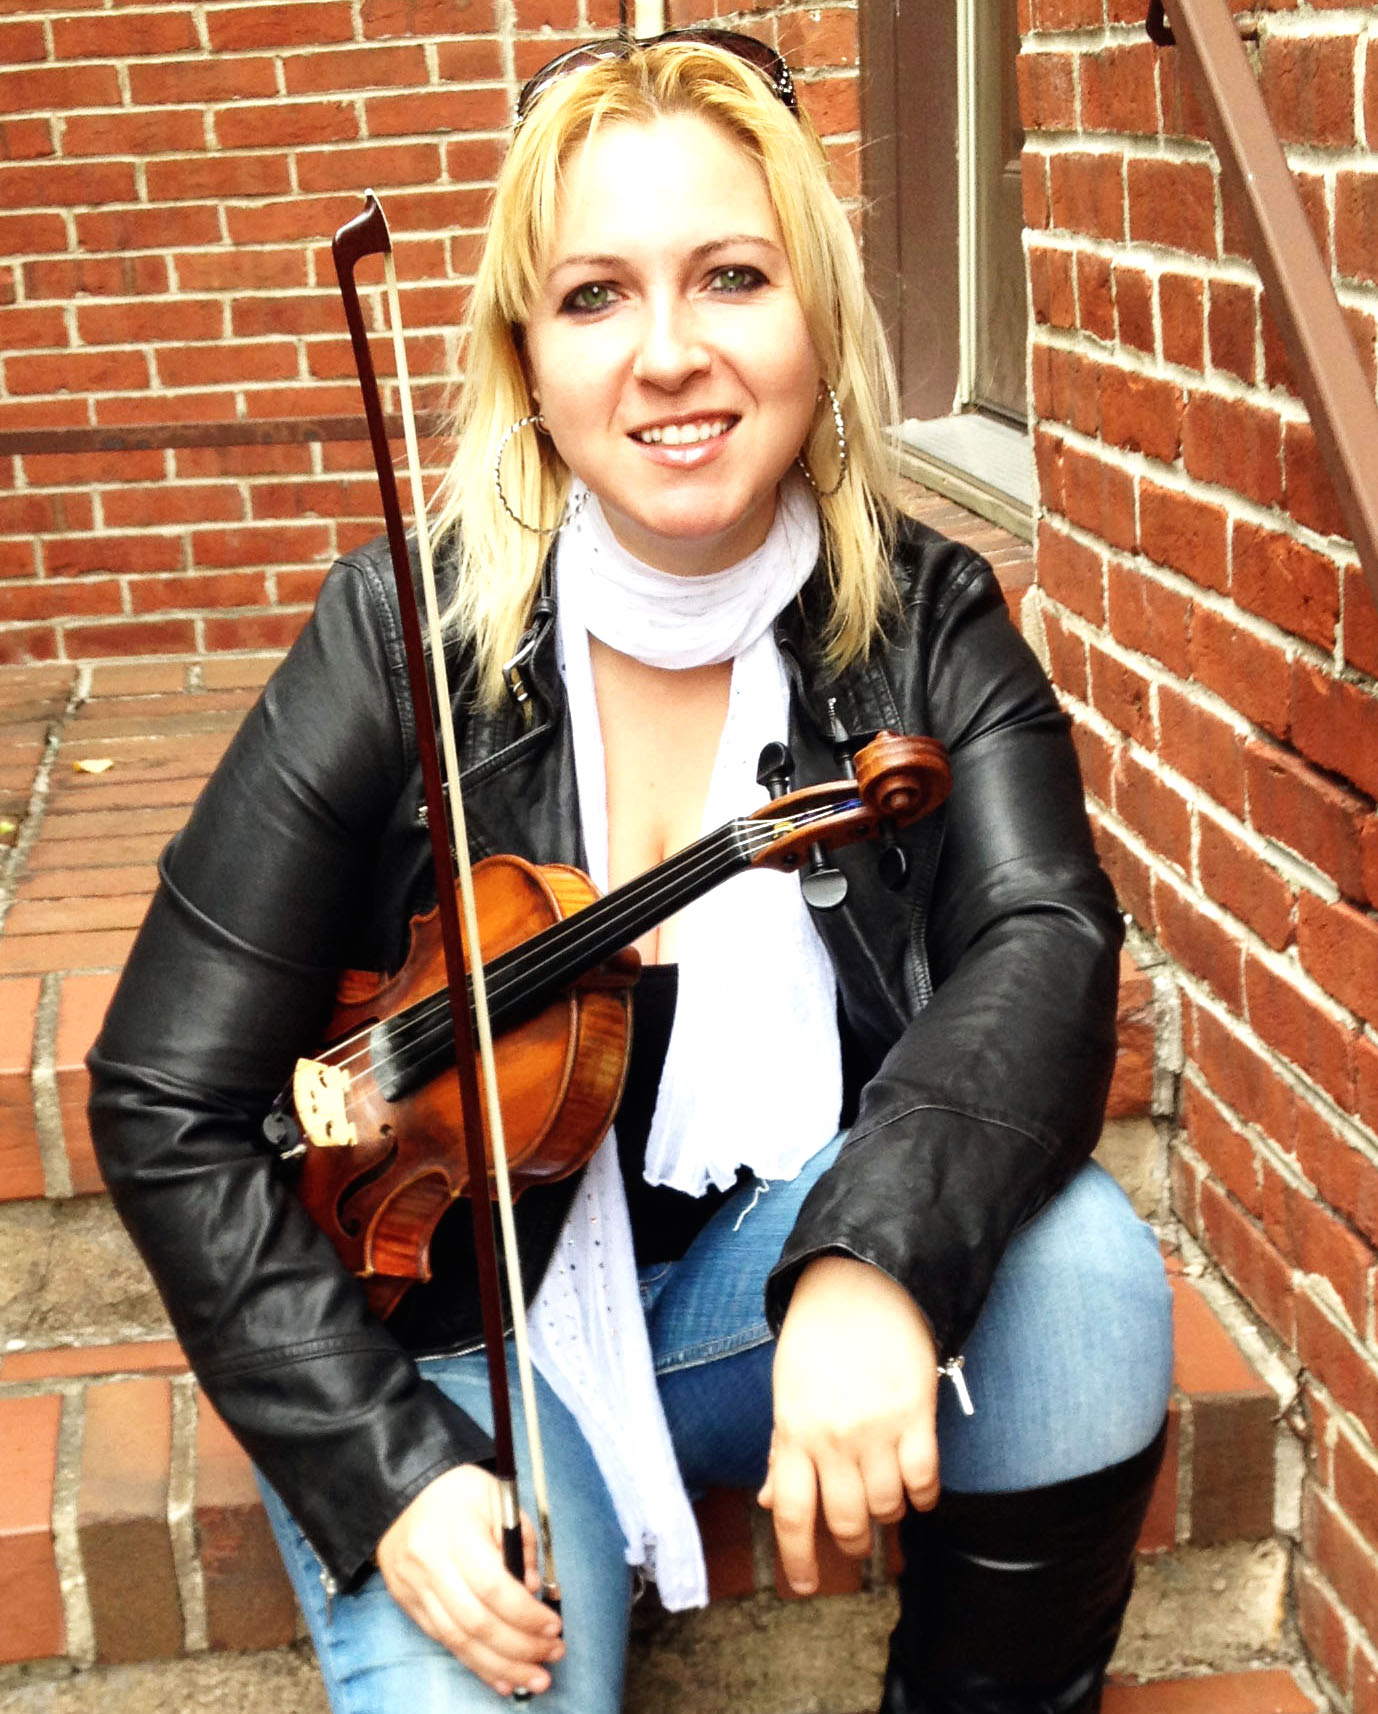 Sensational Violinist And Composer, Claudia Pellegrini, Featured As Music Director At The Lafon Performing Arts Center